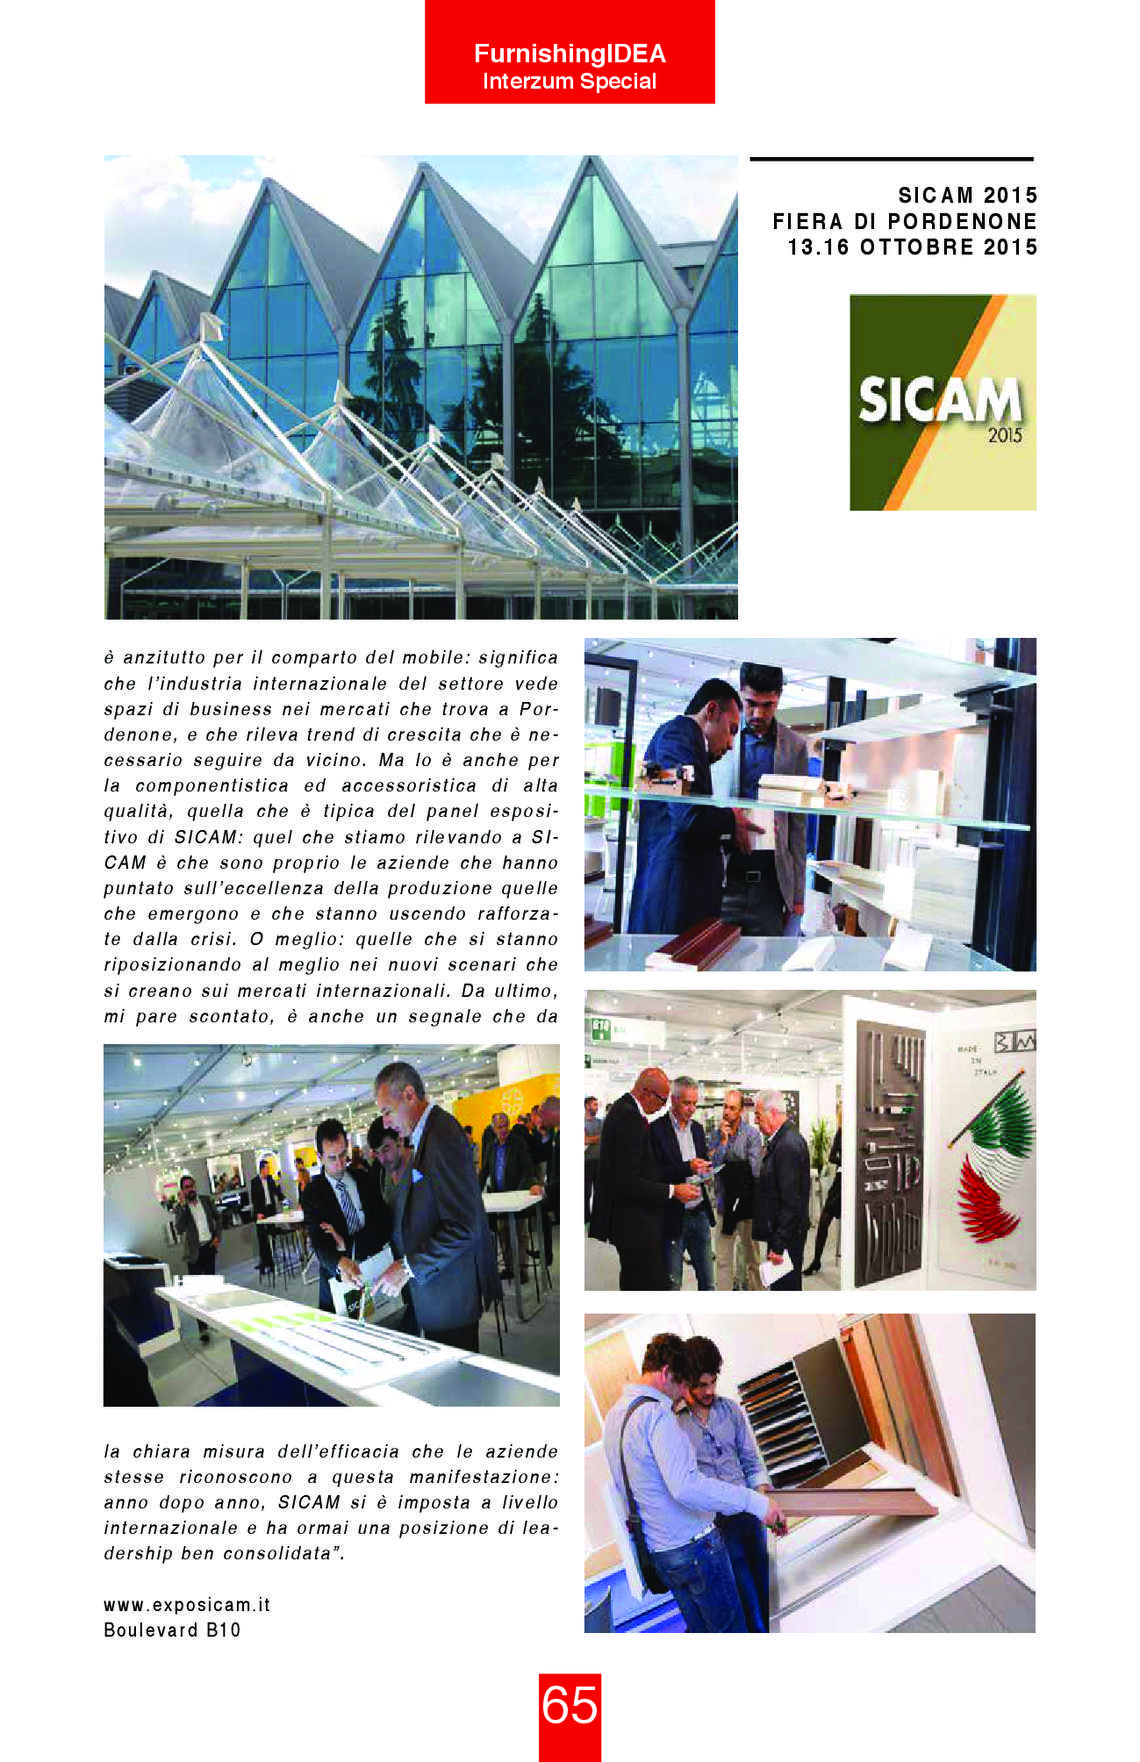 interzum-2015_journal_0_064.jpg